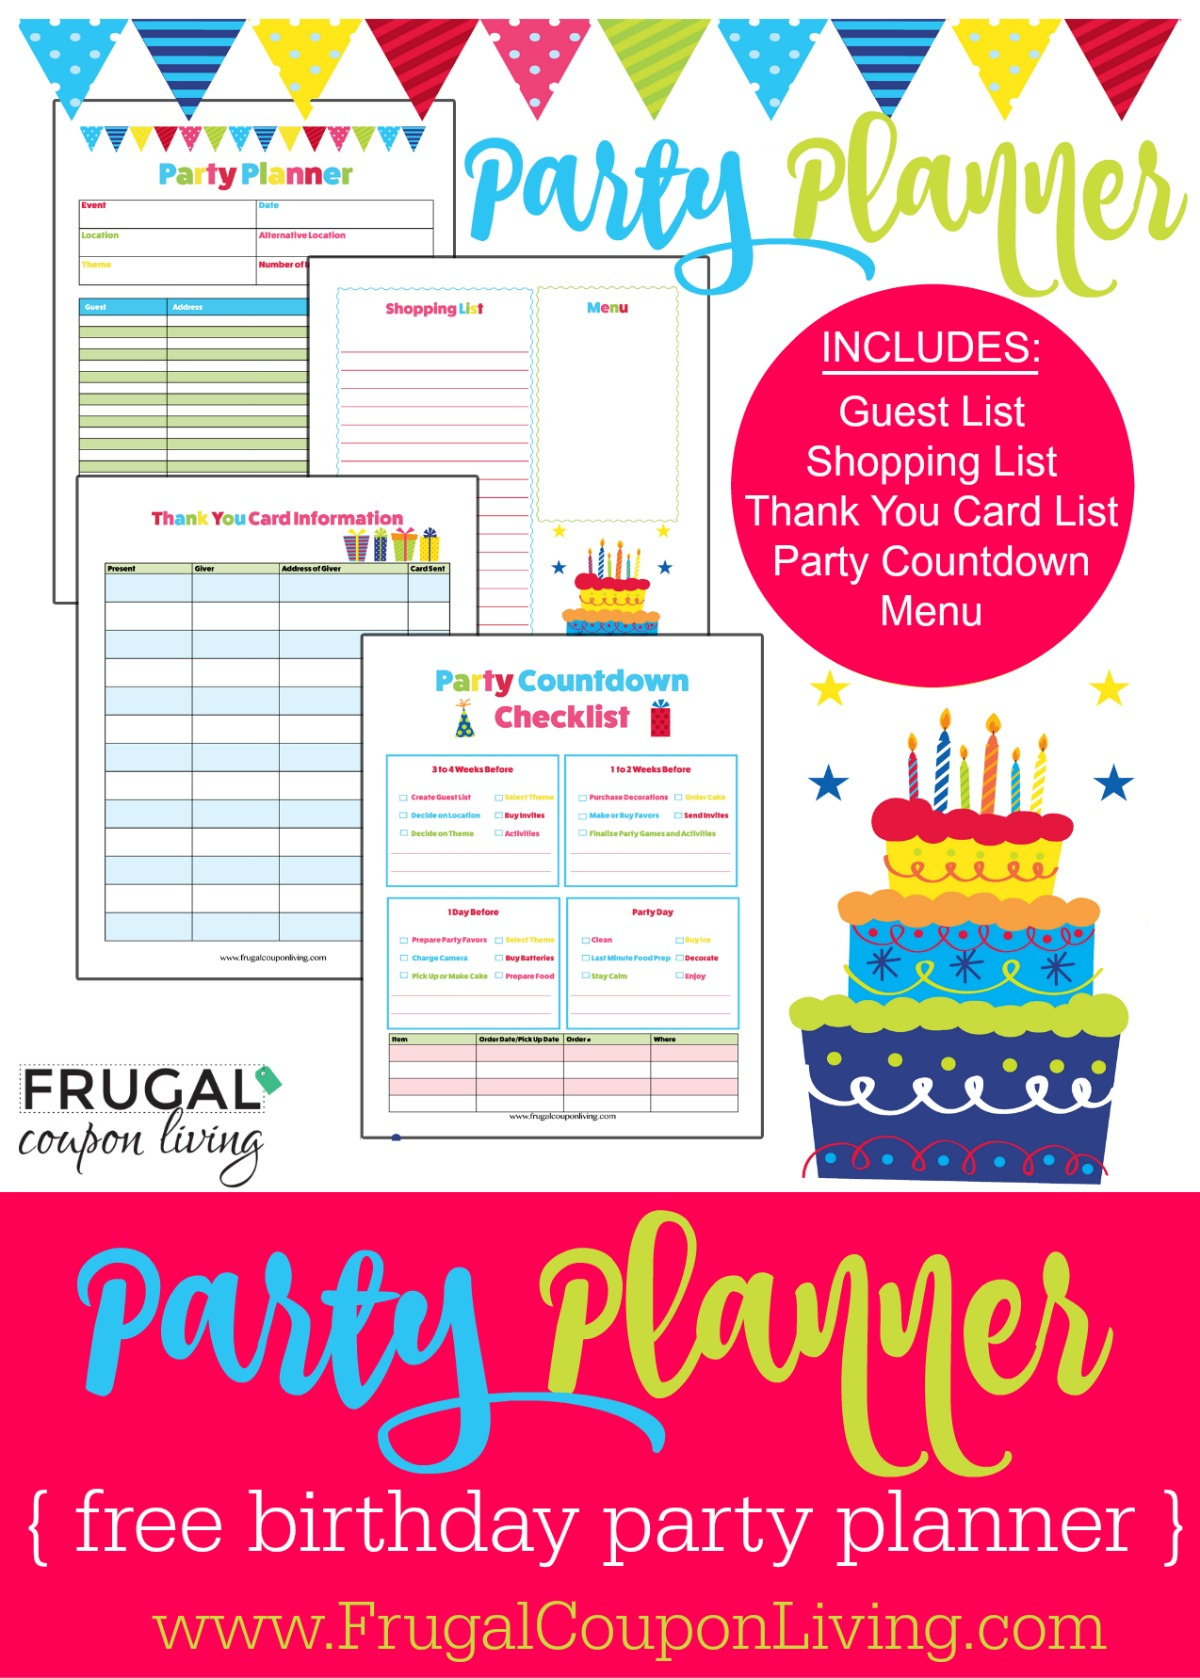 free-birthday-party-planner-header-frugal-coupon-living